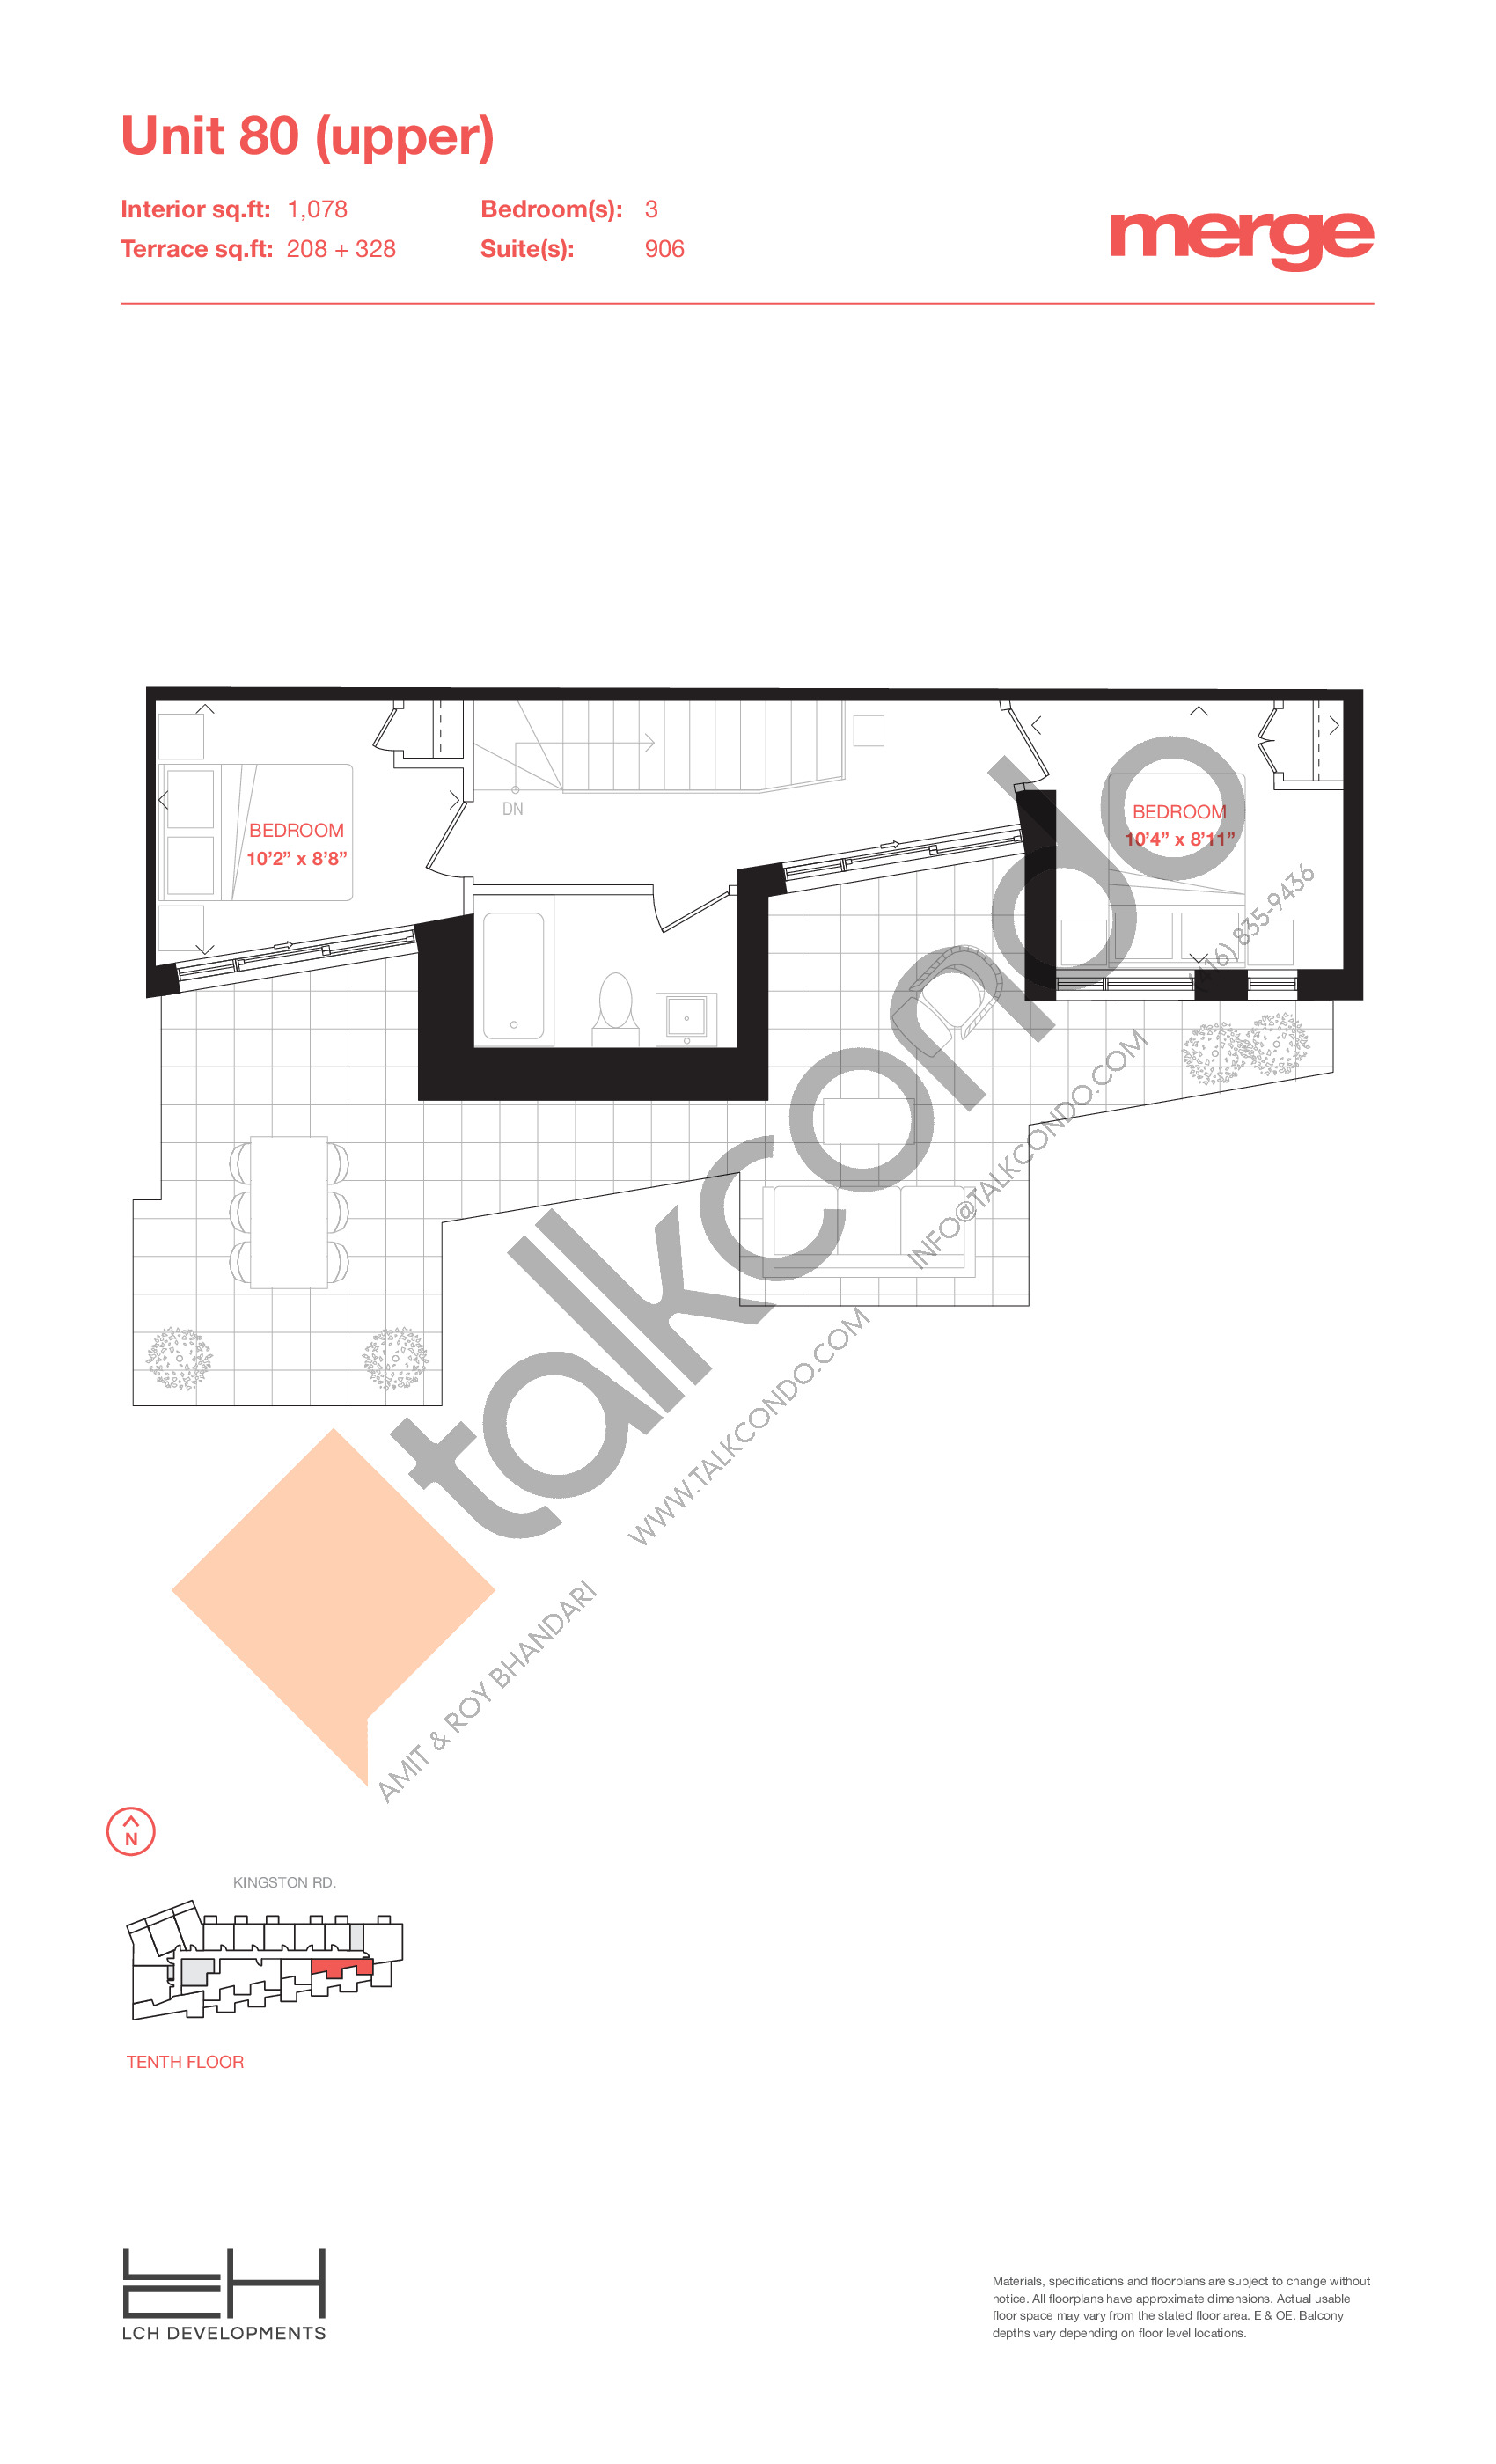 Unit 80 (Upper) - 2 Storey Floor Plan at Merge Condos - 1078 sq.ft